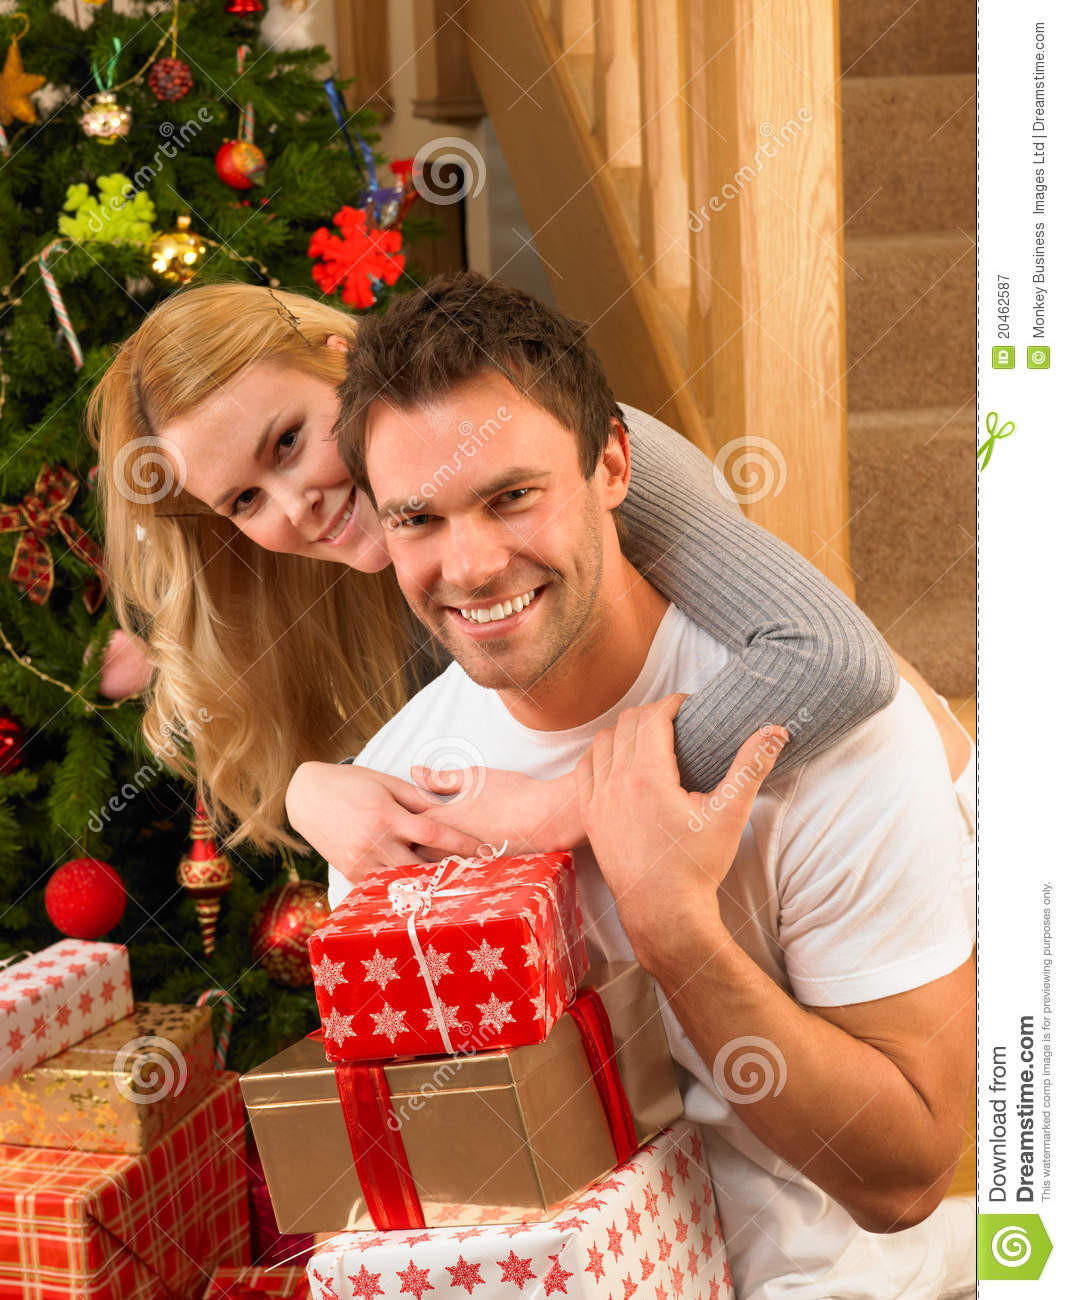 Best ideas about Christmas Gift Ideas For Young Couples . Save or Pin Young Couple At Christmas Exchanging Gifts Royalty Free Now.